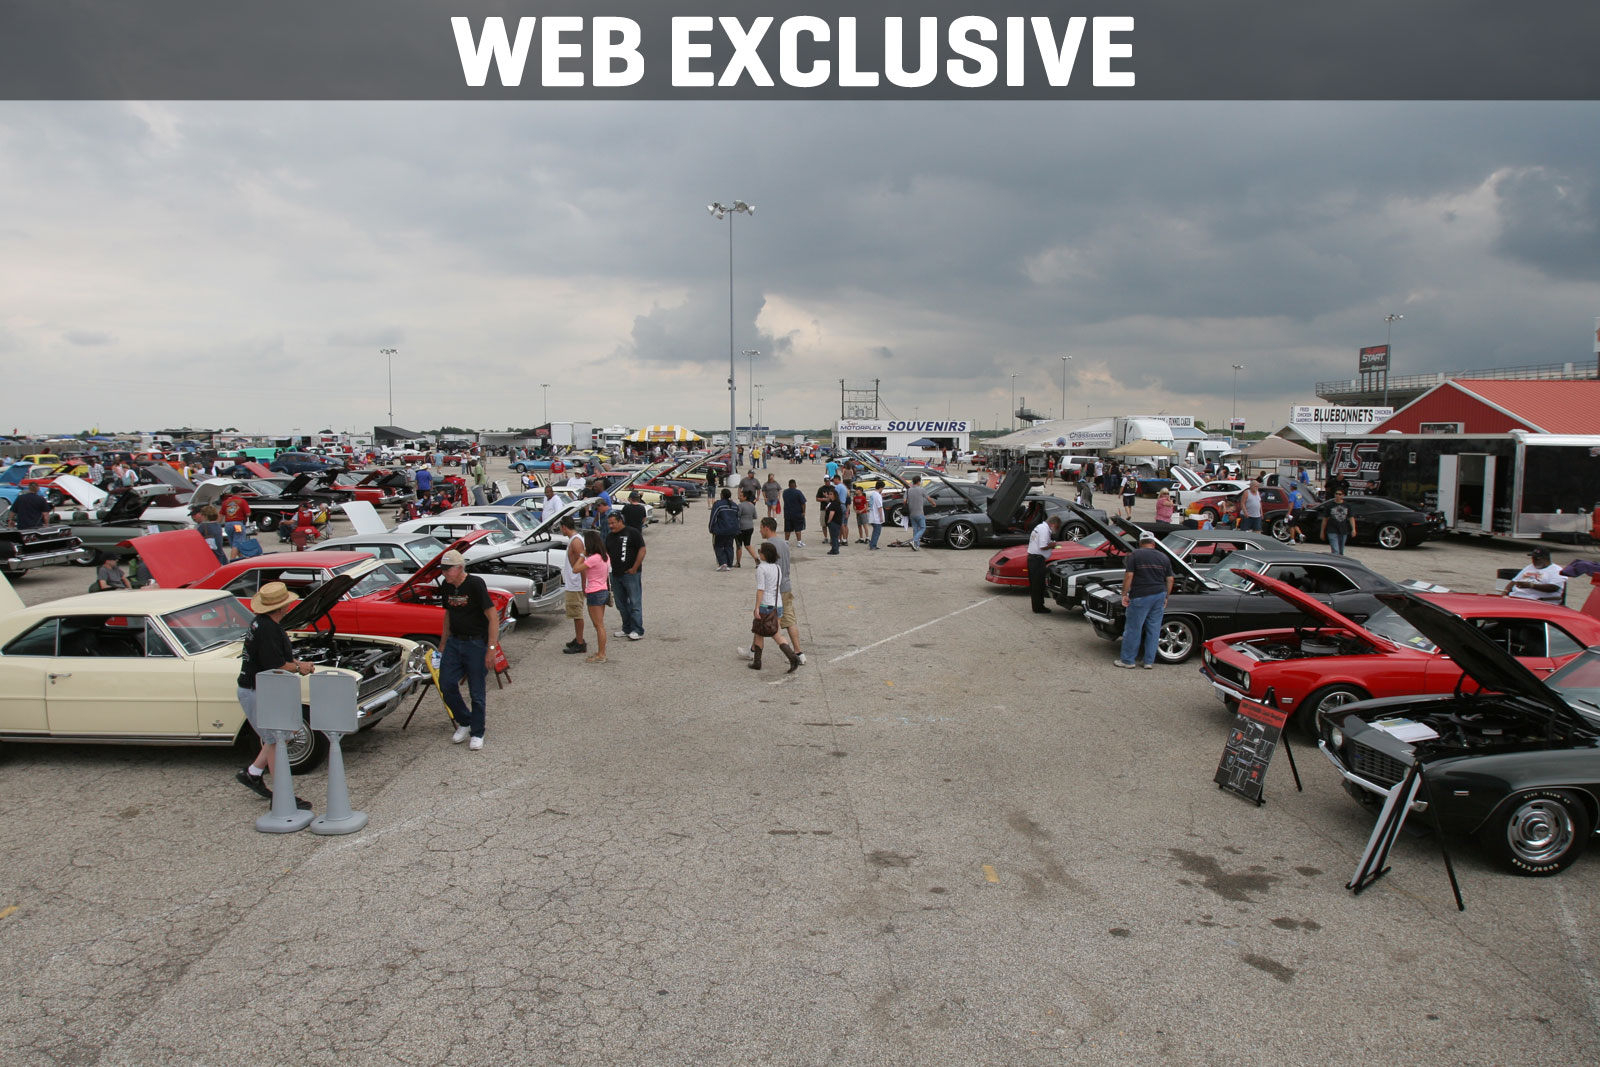 2012 Ennis Super Chevy Show - Web Exclusive